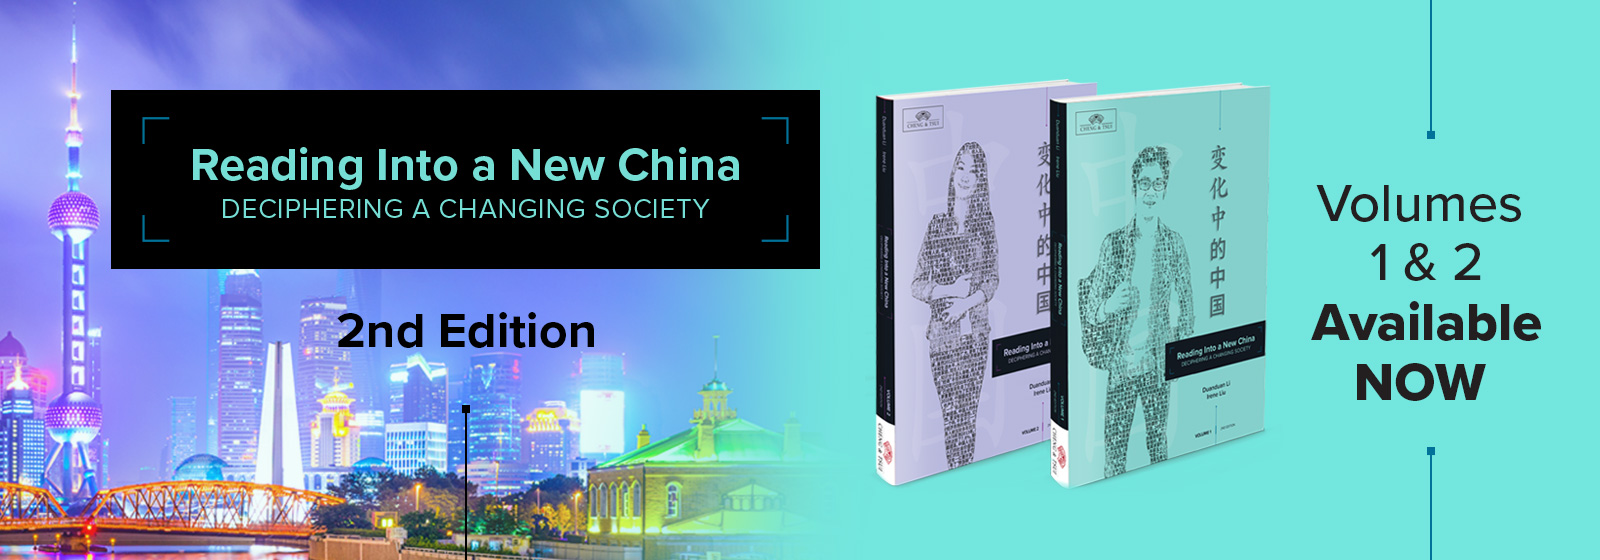 Reading Into a New China 2nd Edition Available Now!